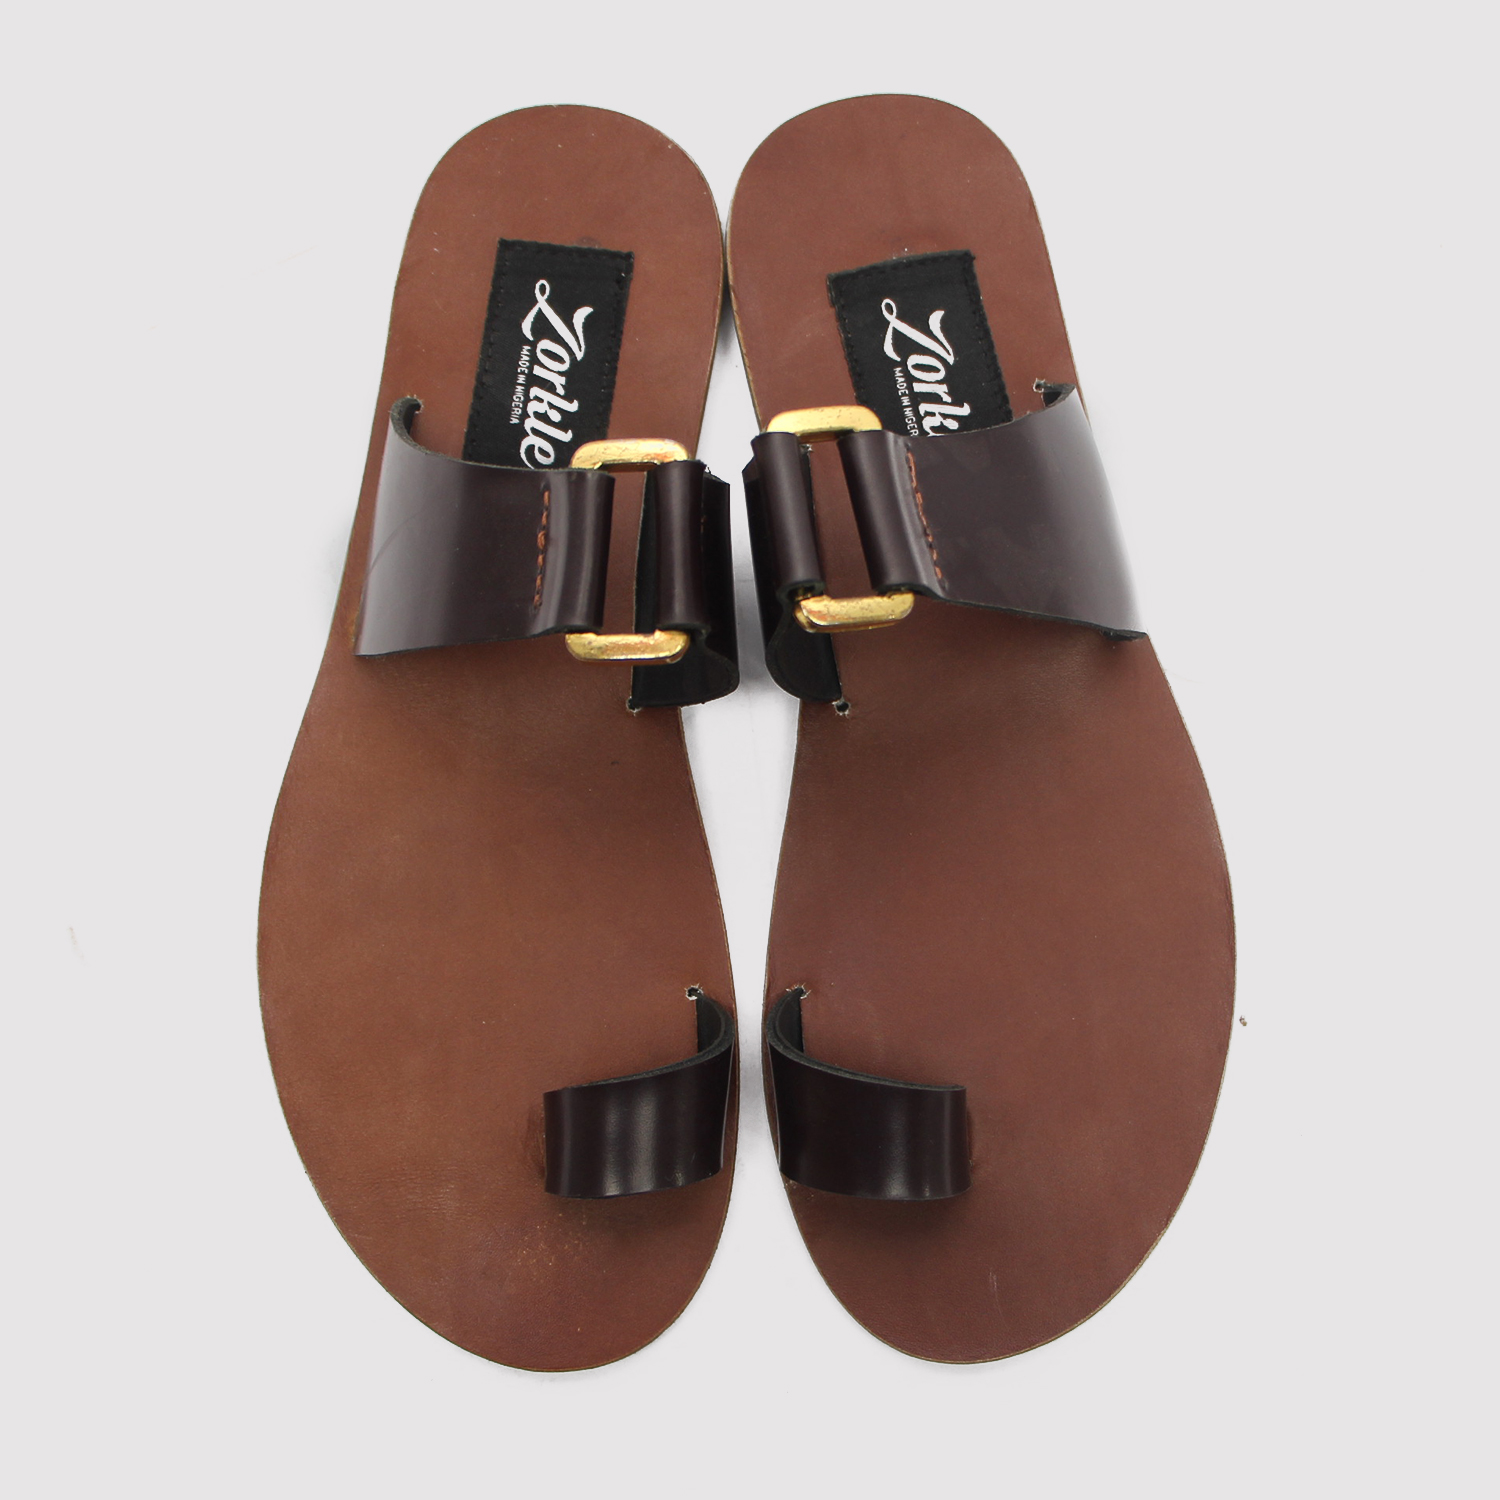 c480e1127a01 Kweenly slippers wine leather zorkles shoes in lagos nigeria